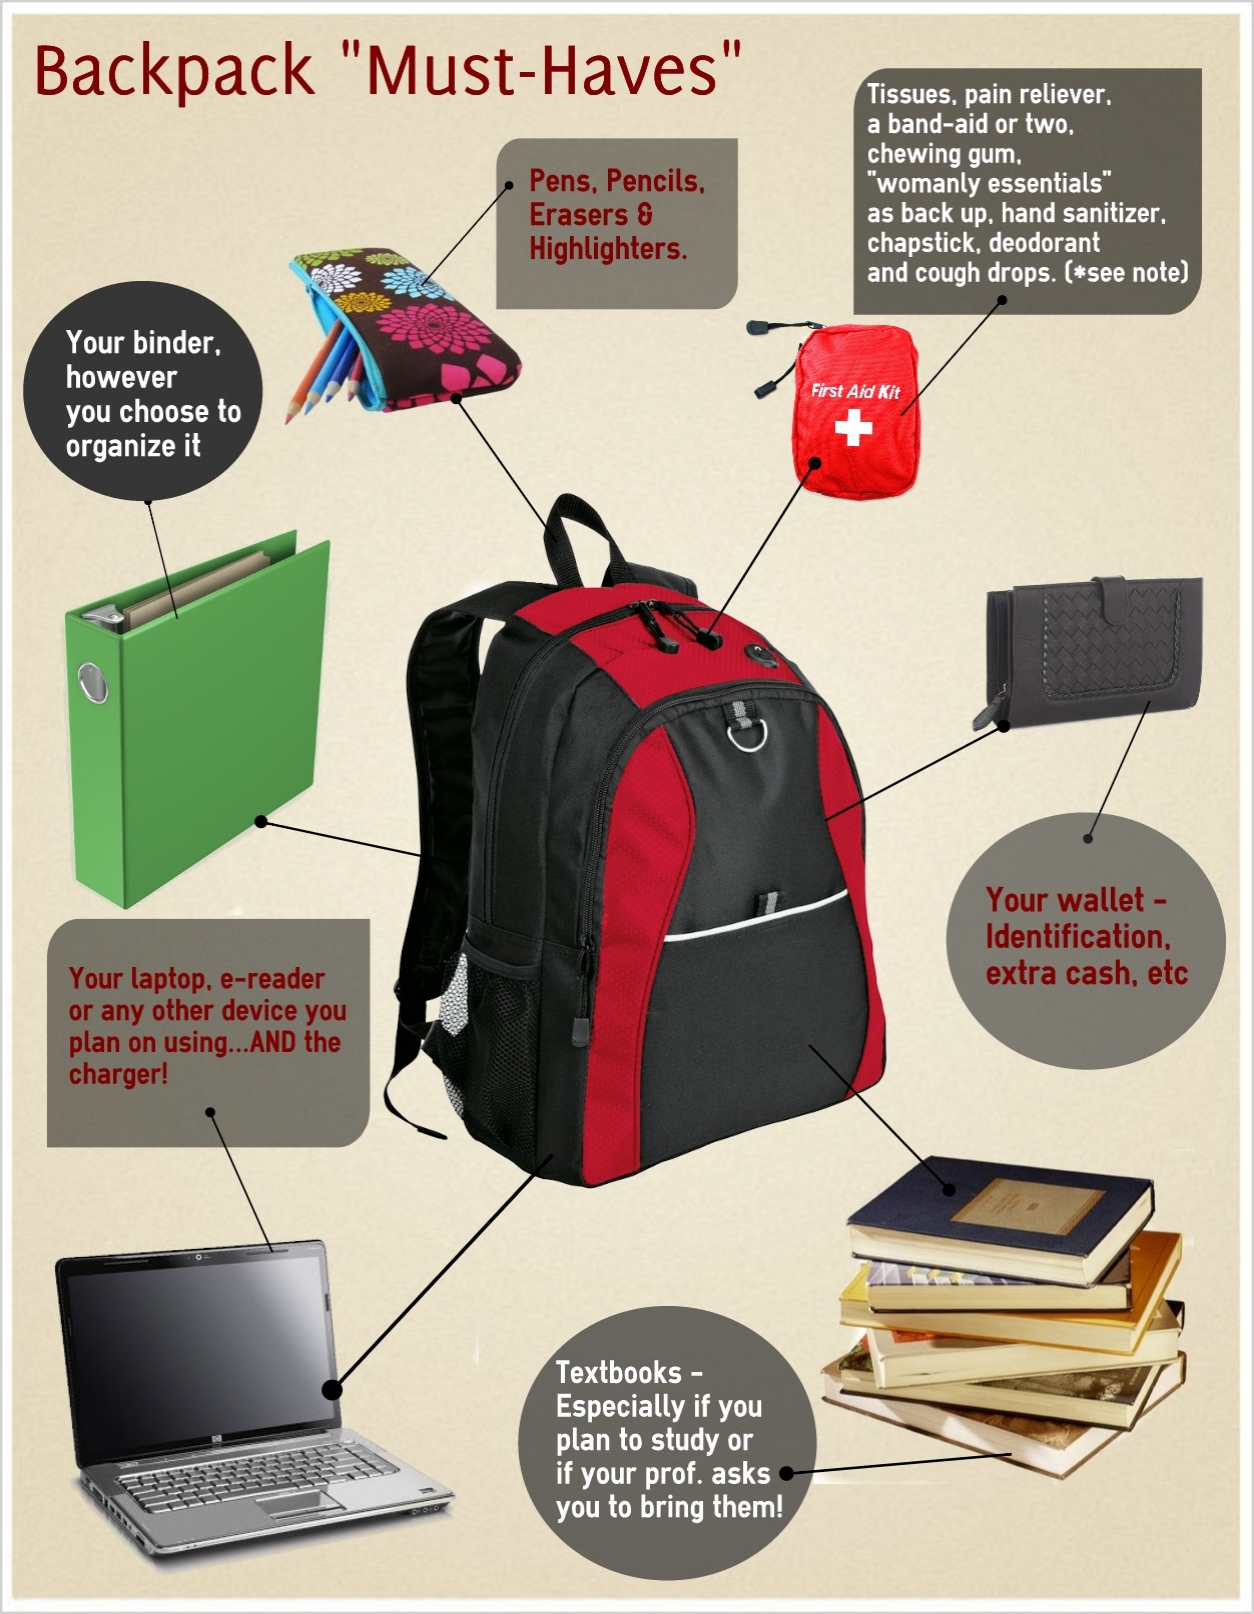 How To Organize Your Backpack For Back To School- Fenix